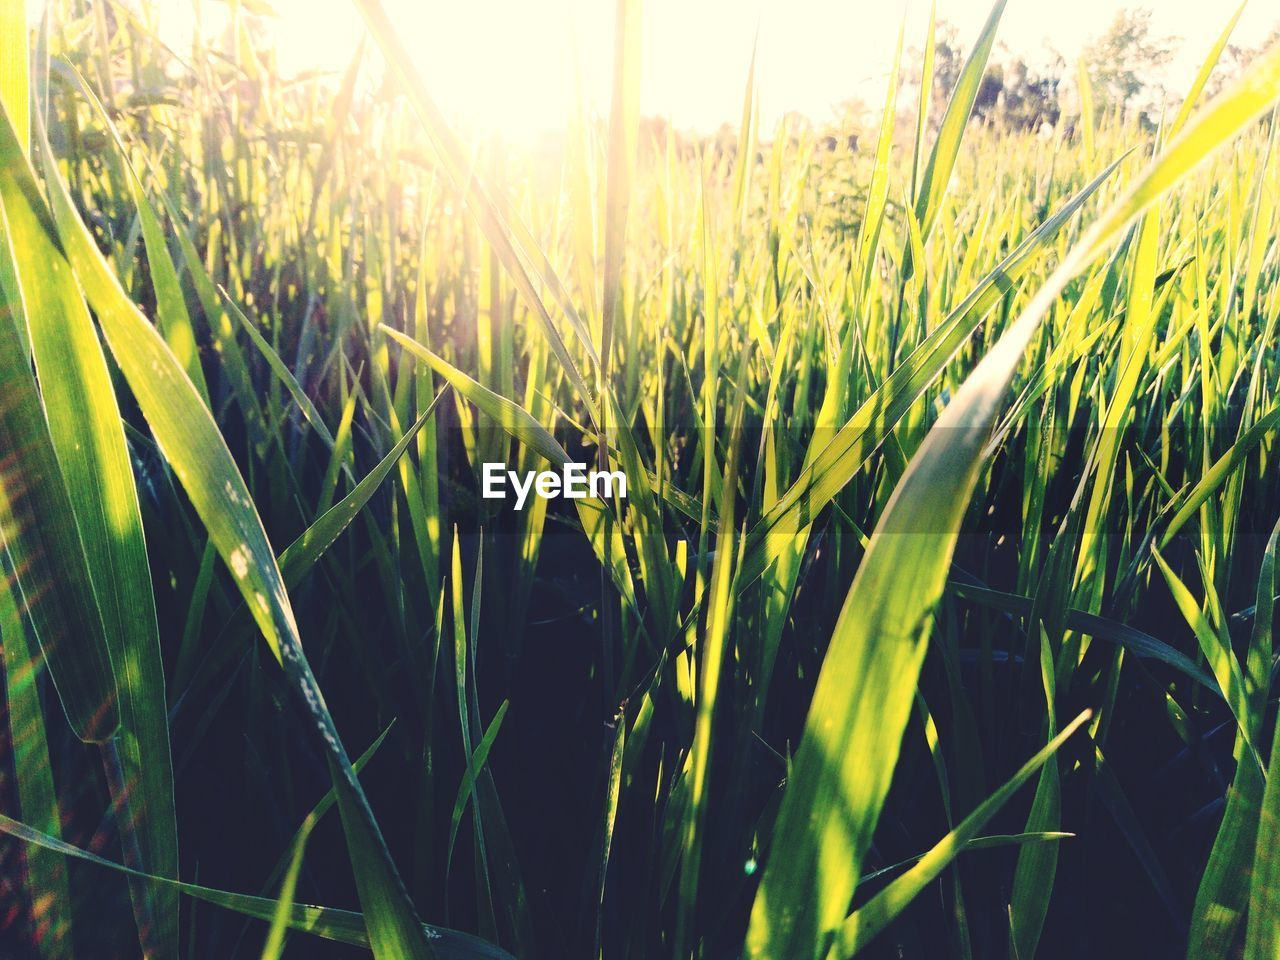 growth, plant, field, land, sunlight, nature, crop, landscape, agriculture, beauty in nature, green color, rural scene, grass, tranquility, cereal plant, no people, farm, day, close-up, sky, blade of grass, outdoors, lens flare, plantation